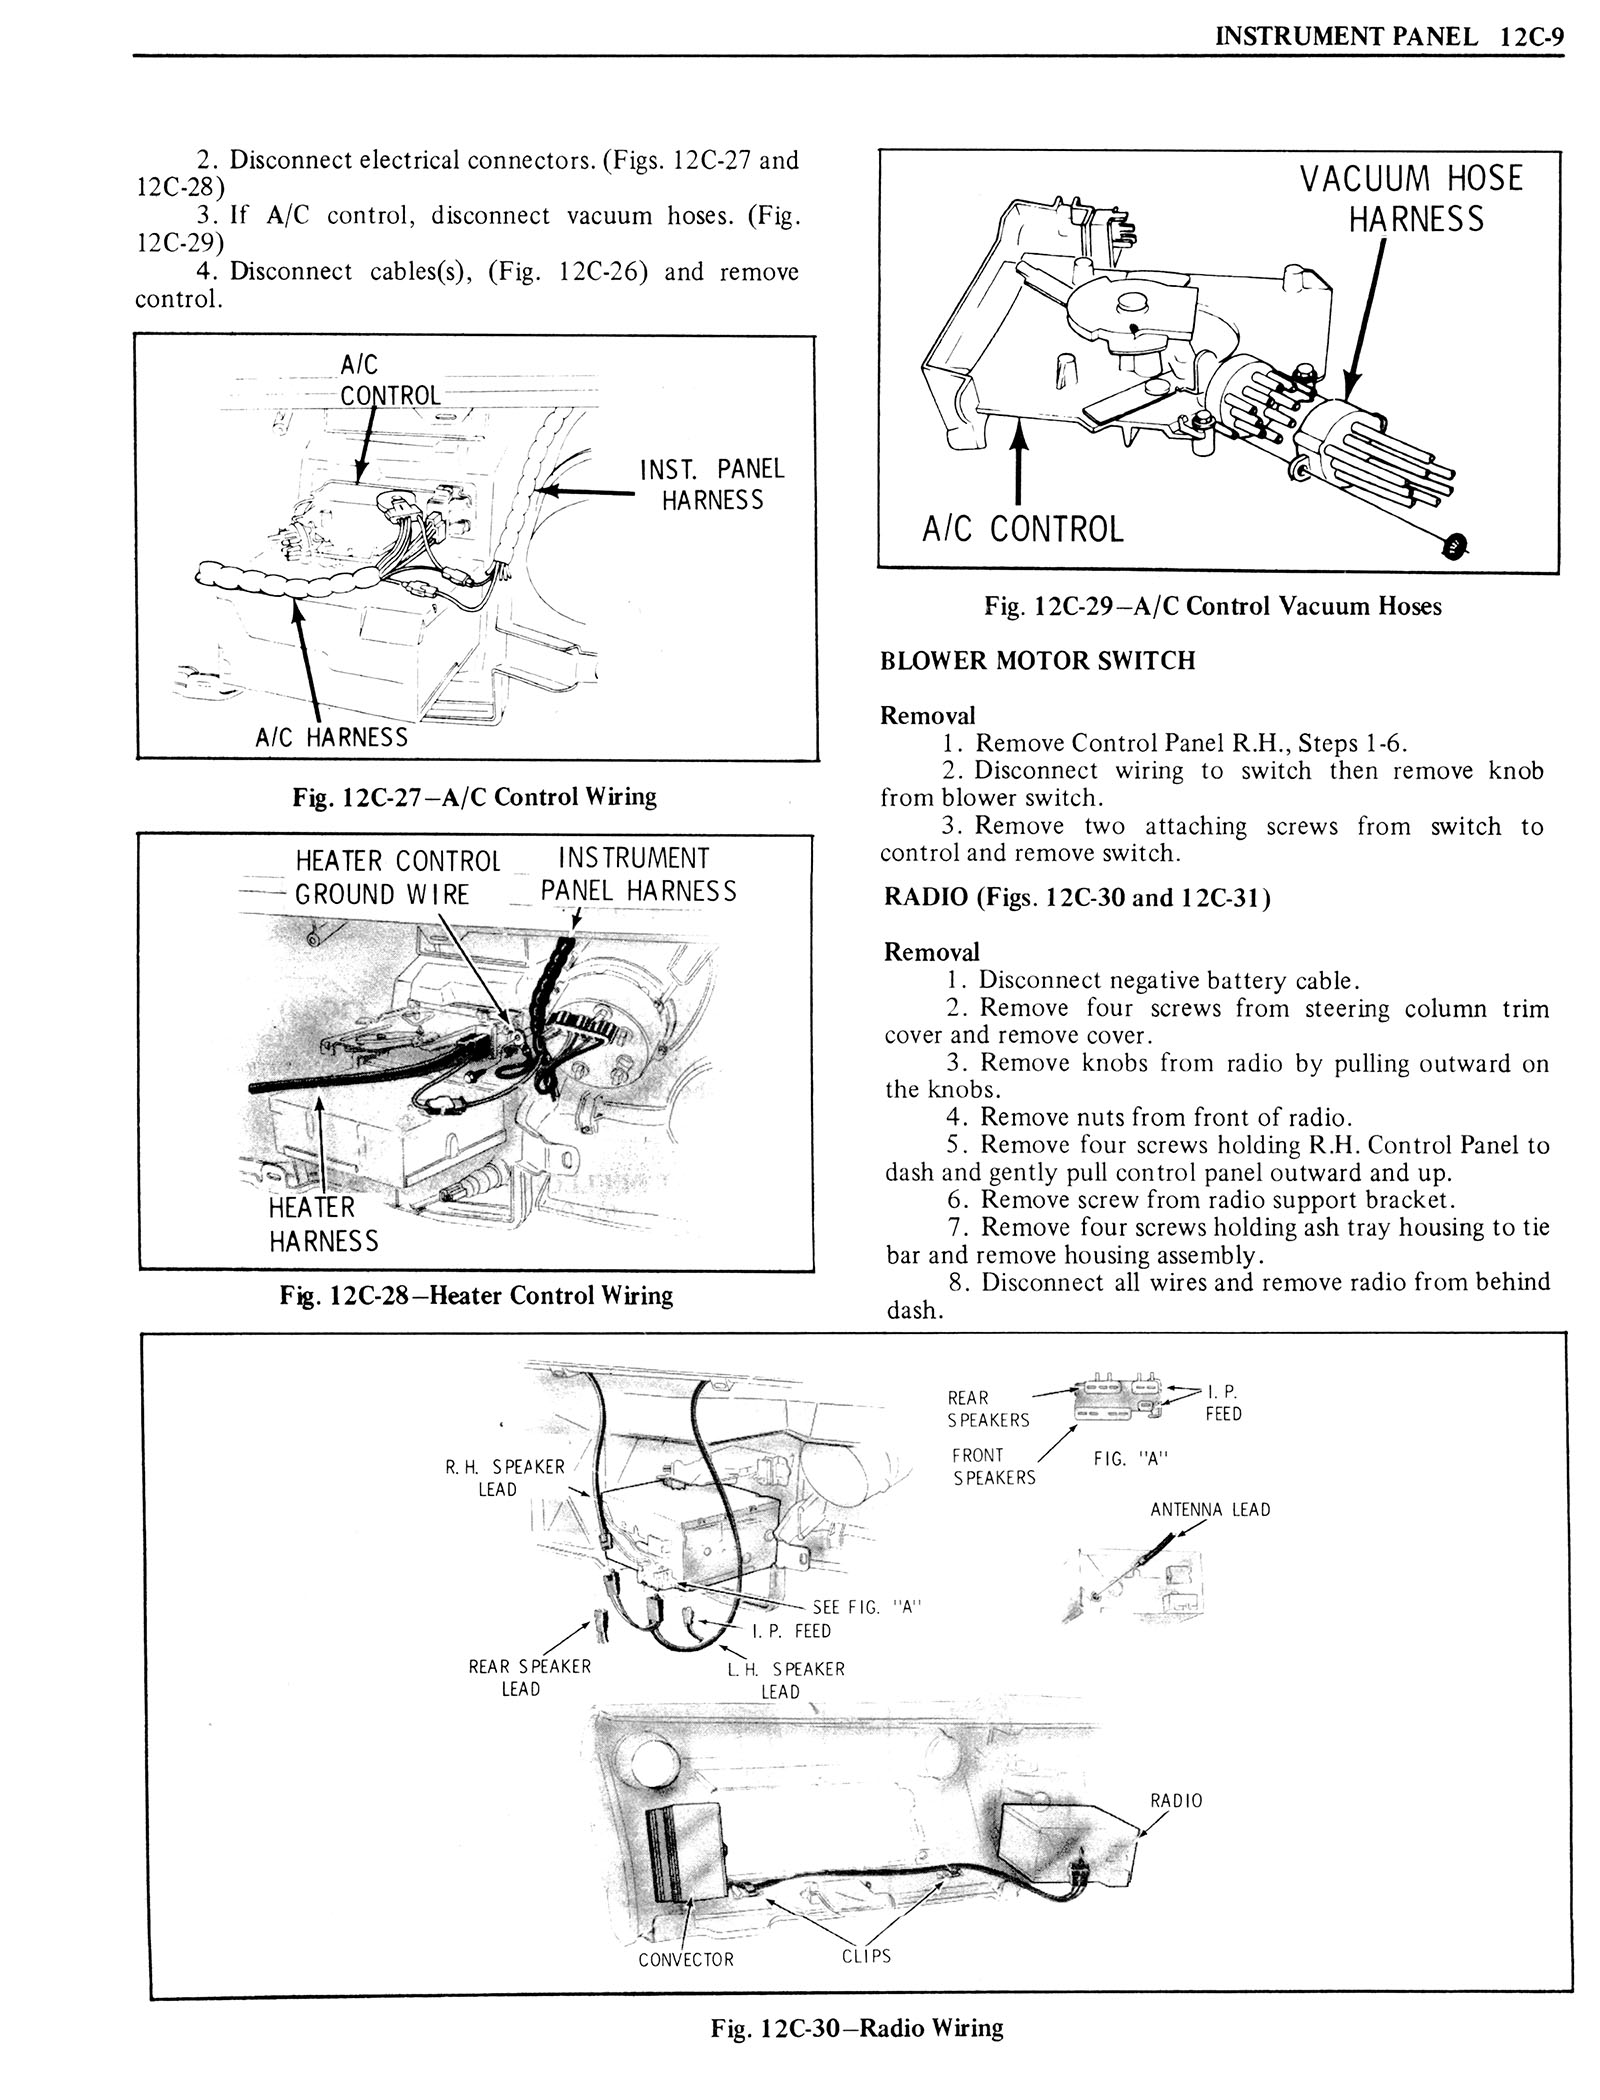 1976 Oldsmobile Service Manual page 1257 of 1390